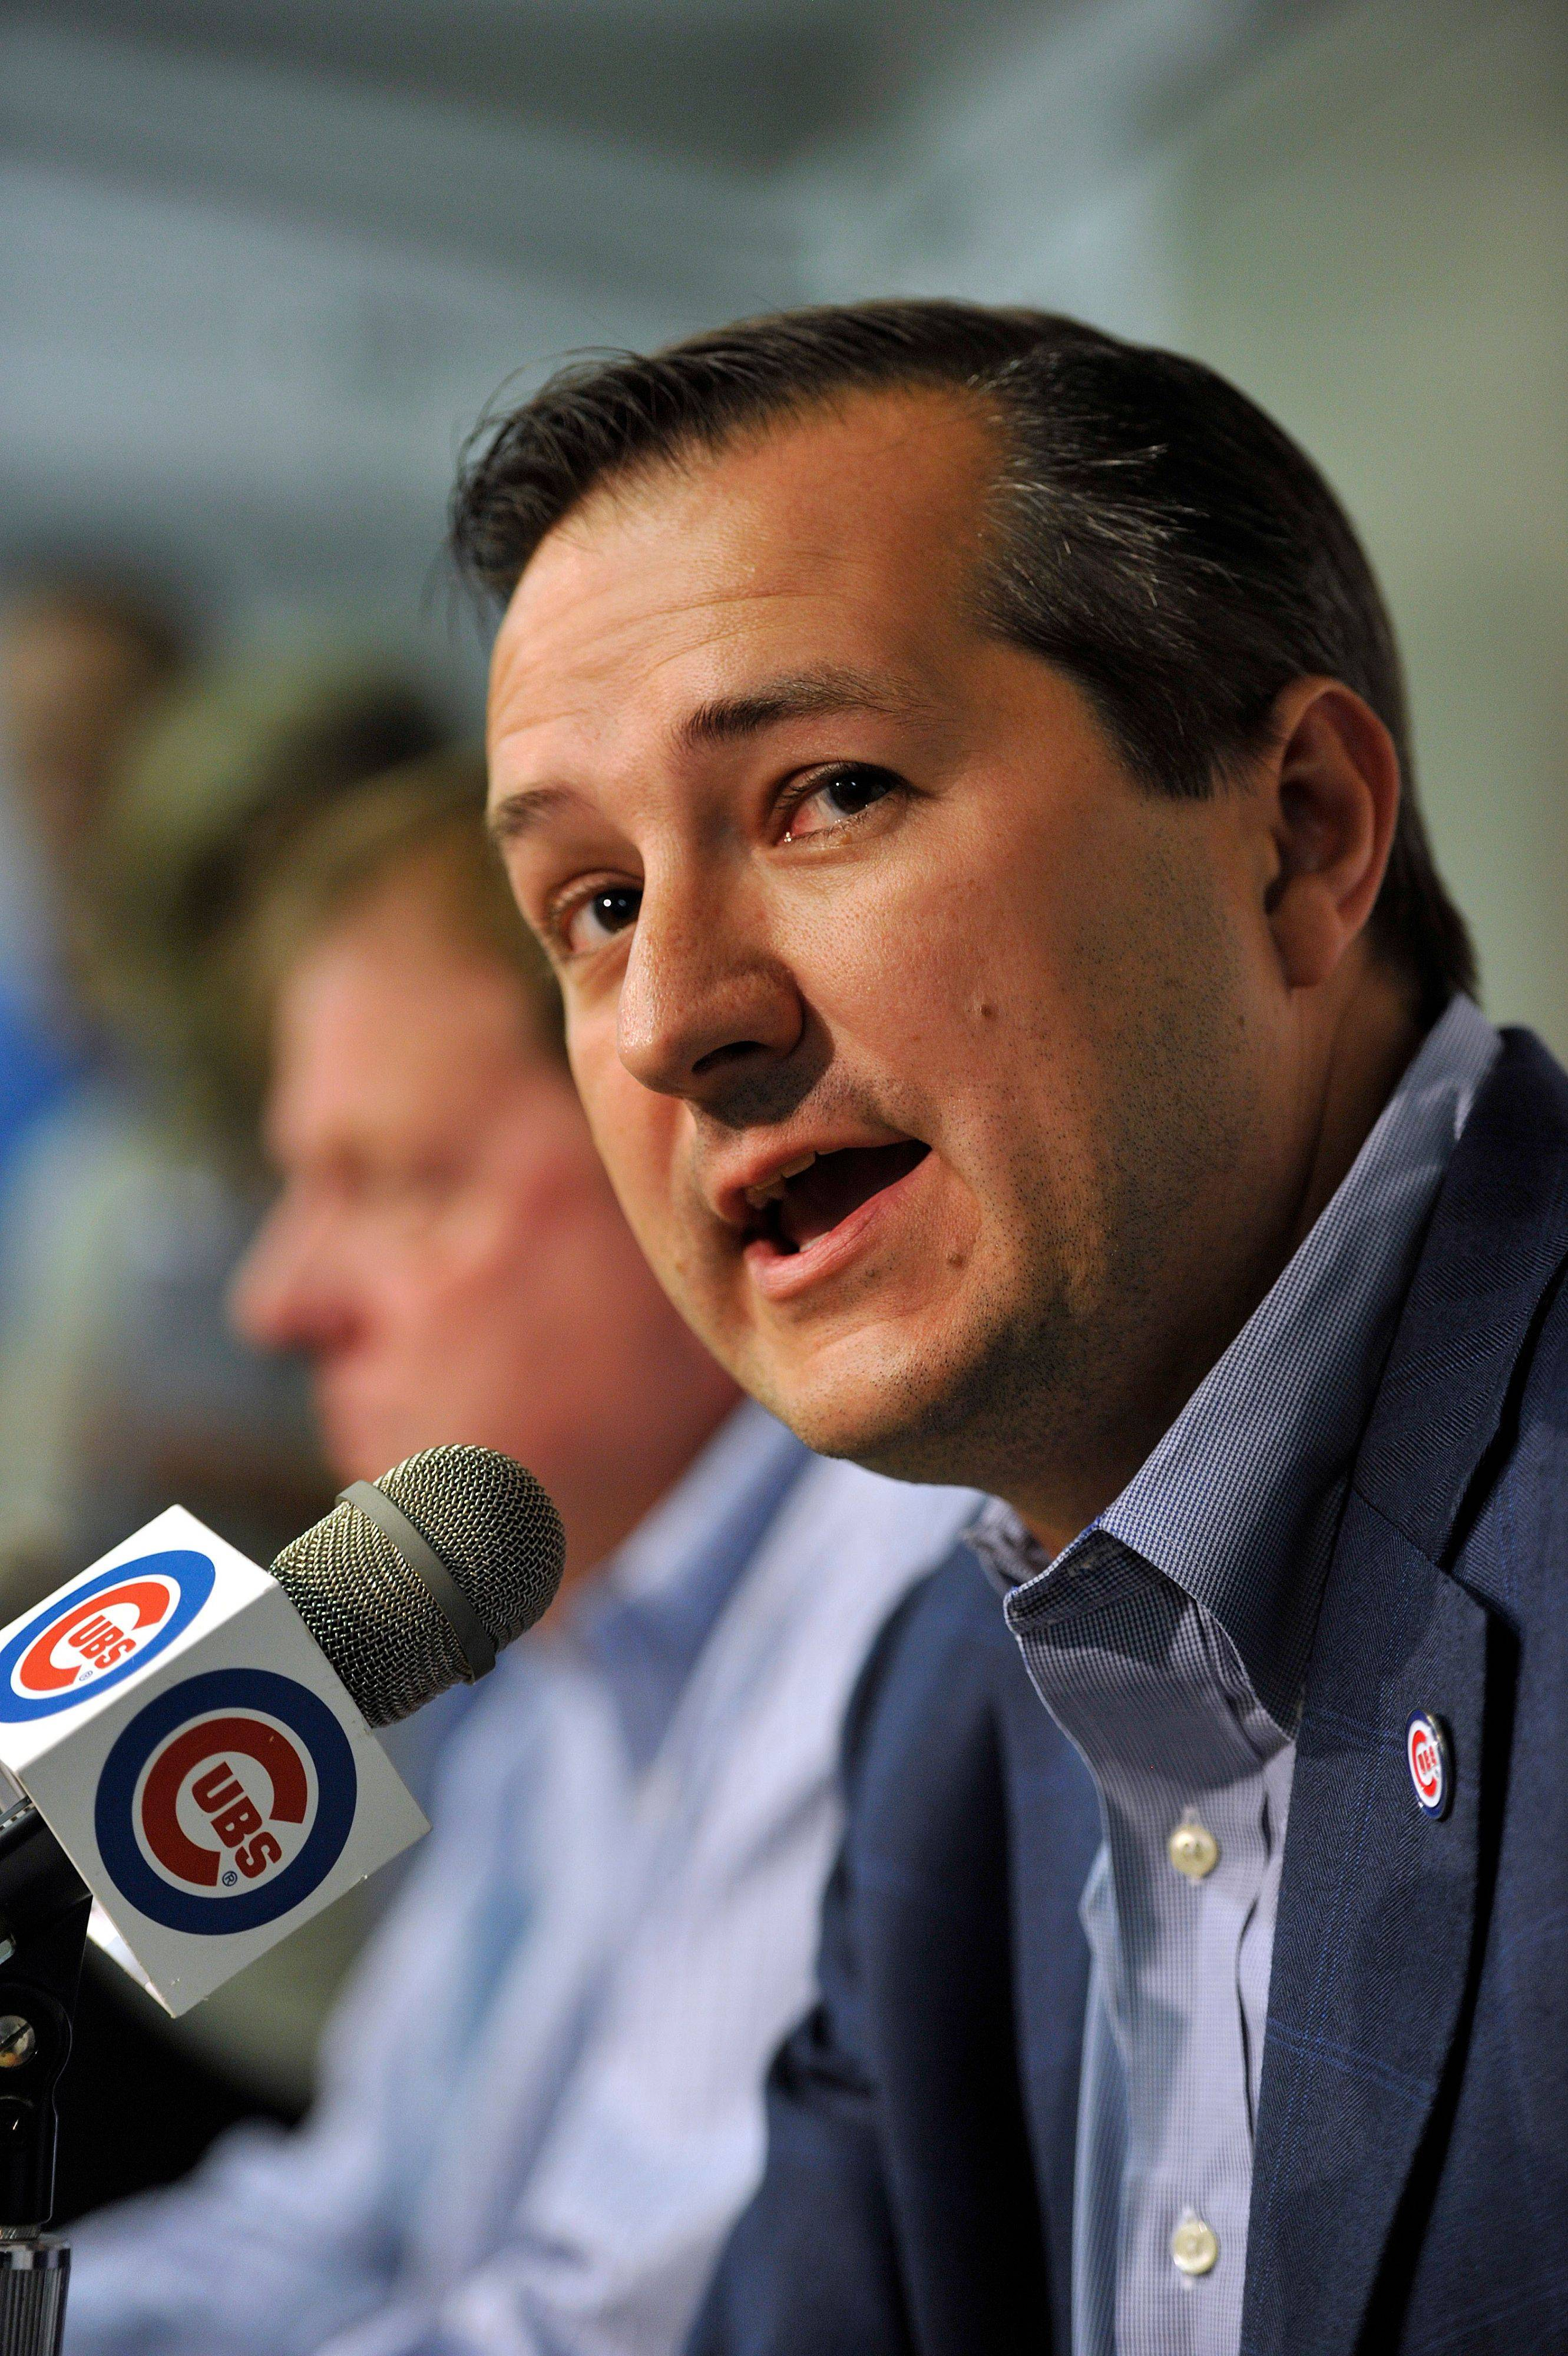 Cubs owner Tom Ricketts and his family have been accessible to Cubs fans in their first year of ownership. Ricketts, however, will likely face some tough questions this weekends during the annual Cubs Convention.